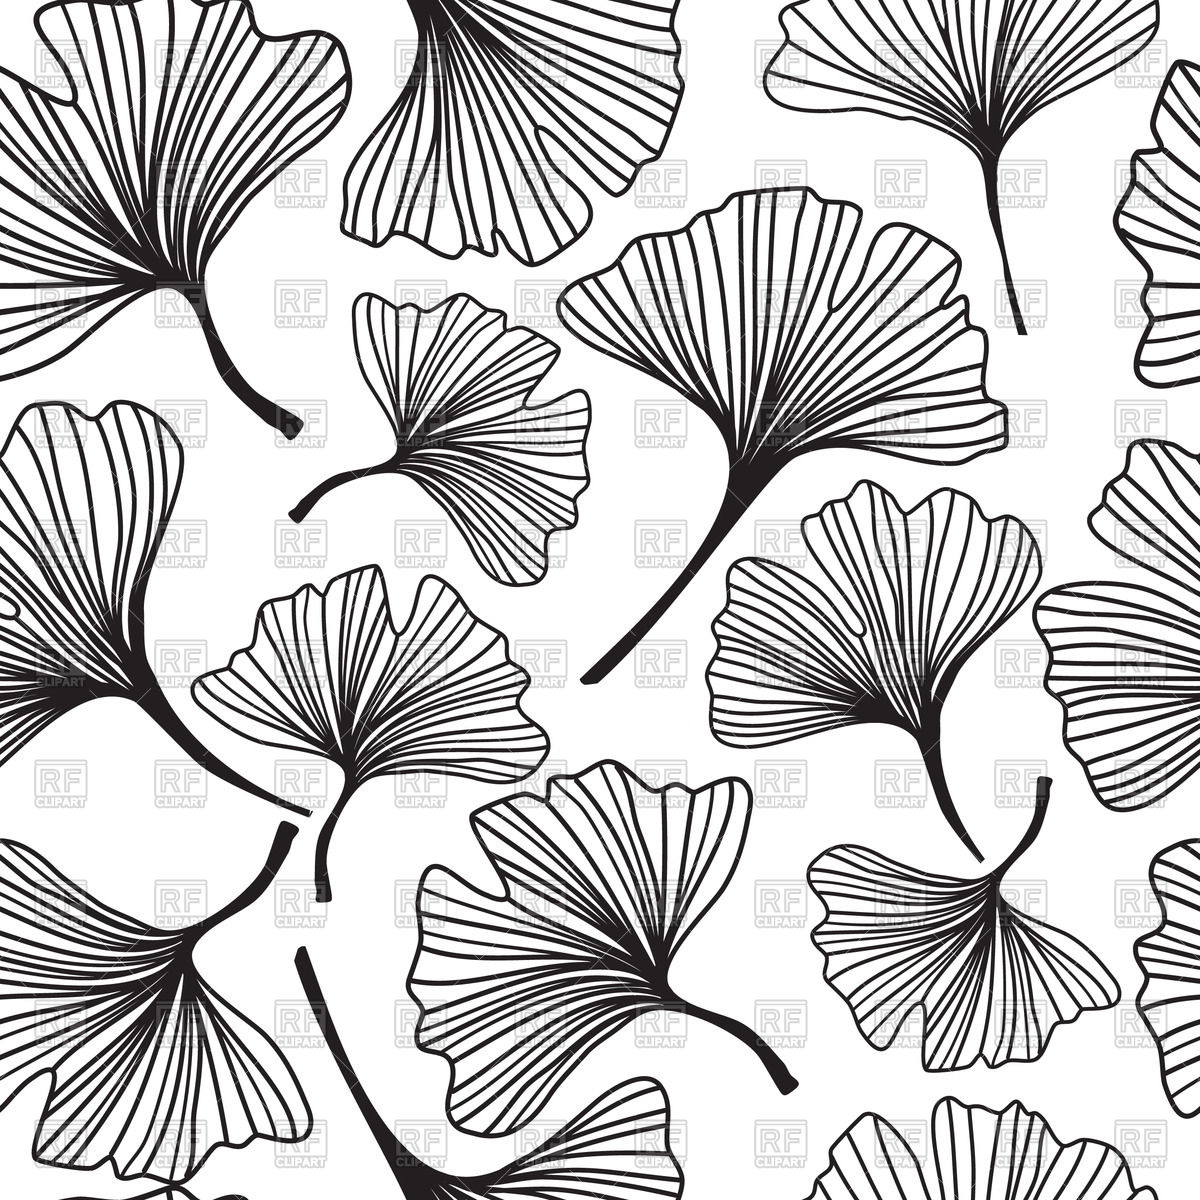 Seamless background with decorative outline of flowers.